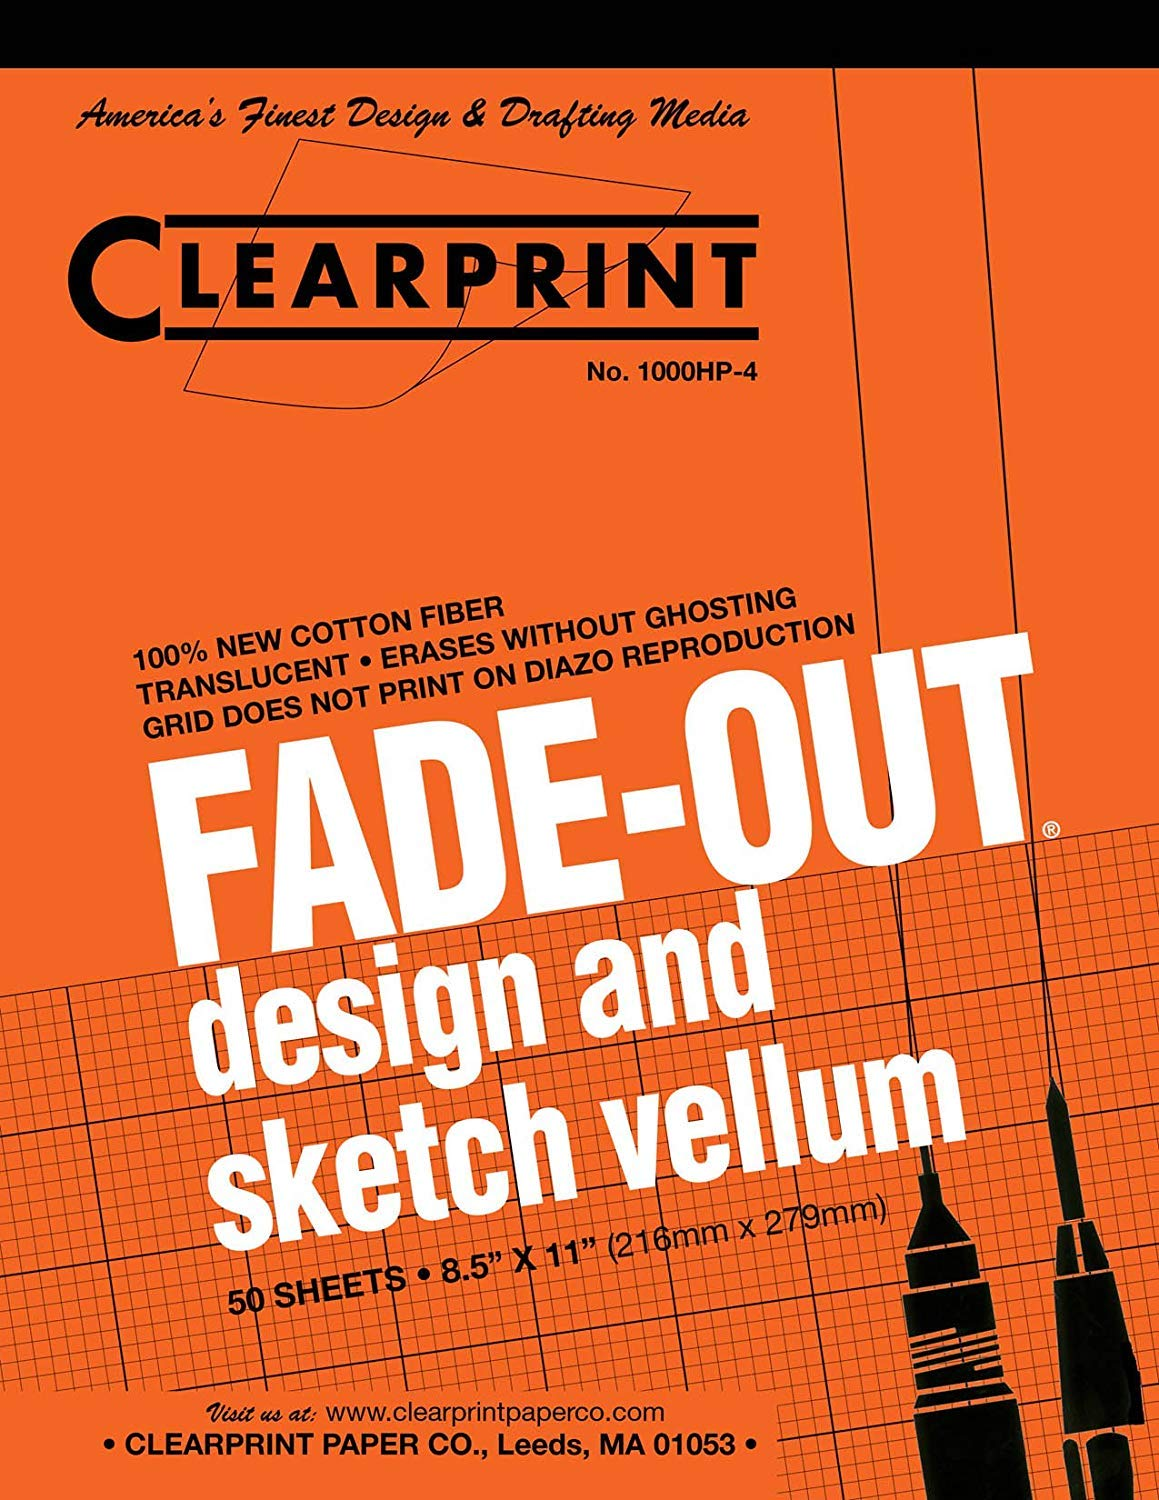 10004410 16 lb. Clearprint 1000H Design Vellum Pad with Printed Fade-Out 4x4 Grid 50 Sheets 100/% Cotton Translucent White 8-1//2 x 11 Inches